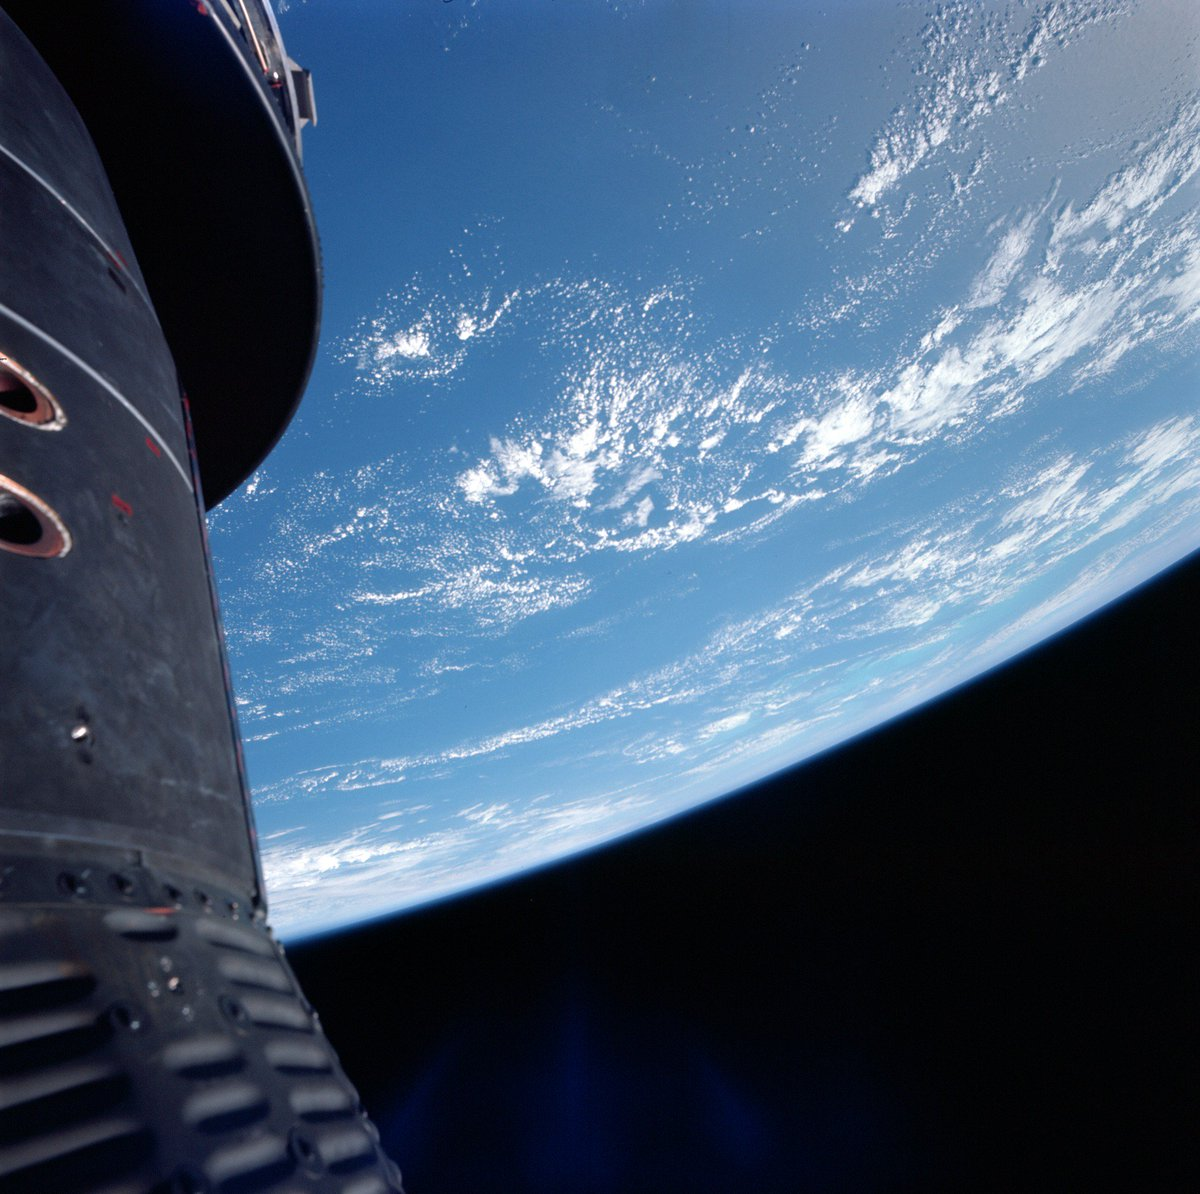 Looking at earth picture